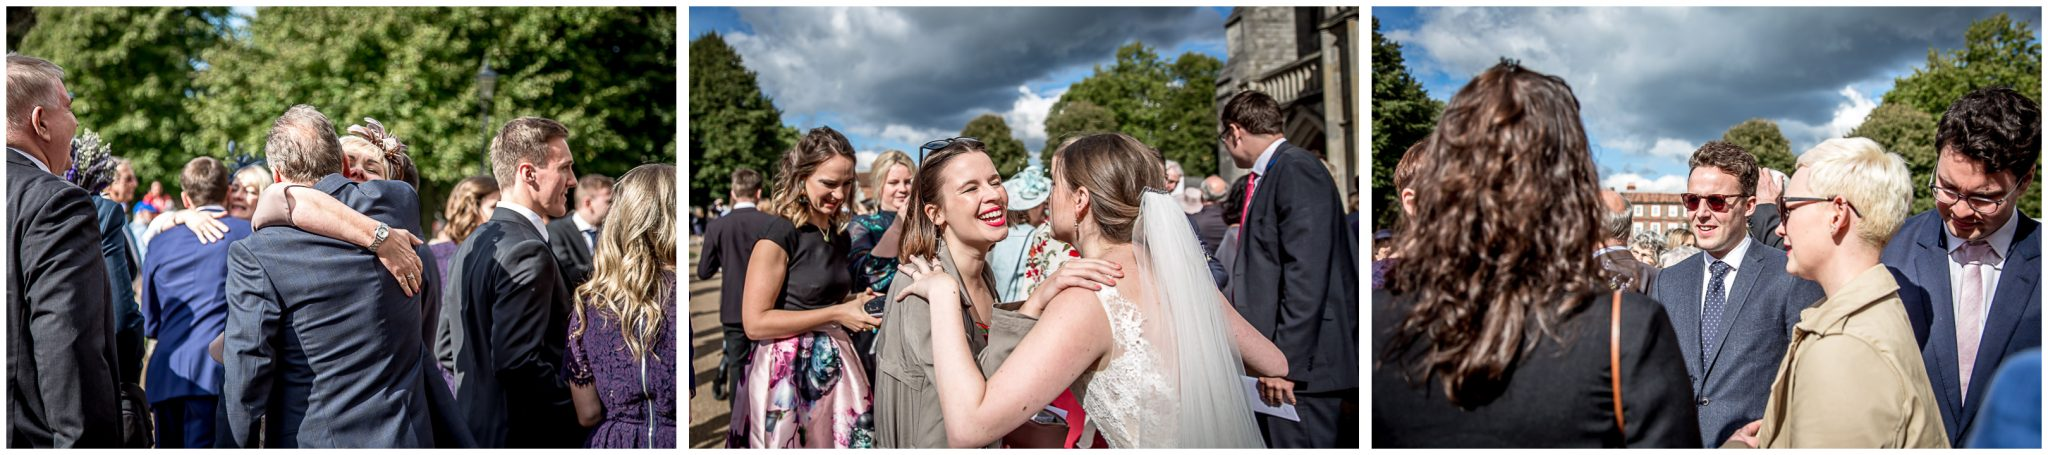 winchester cathedral wedding photography couple congratulated by guests